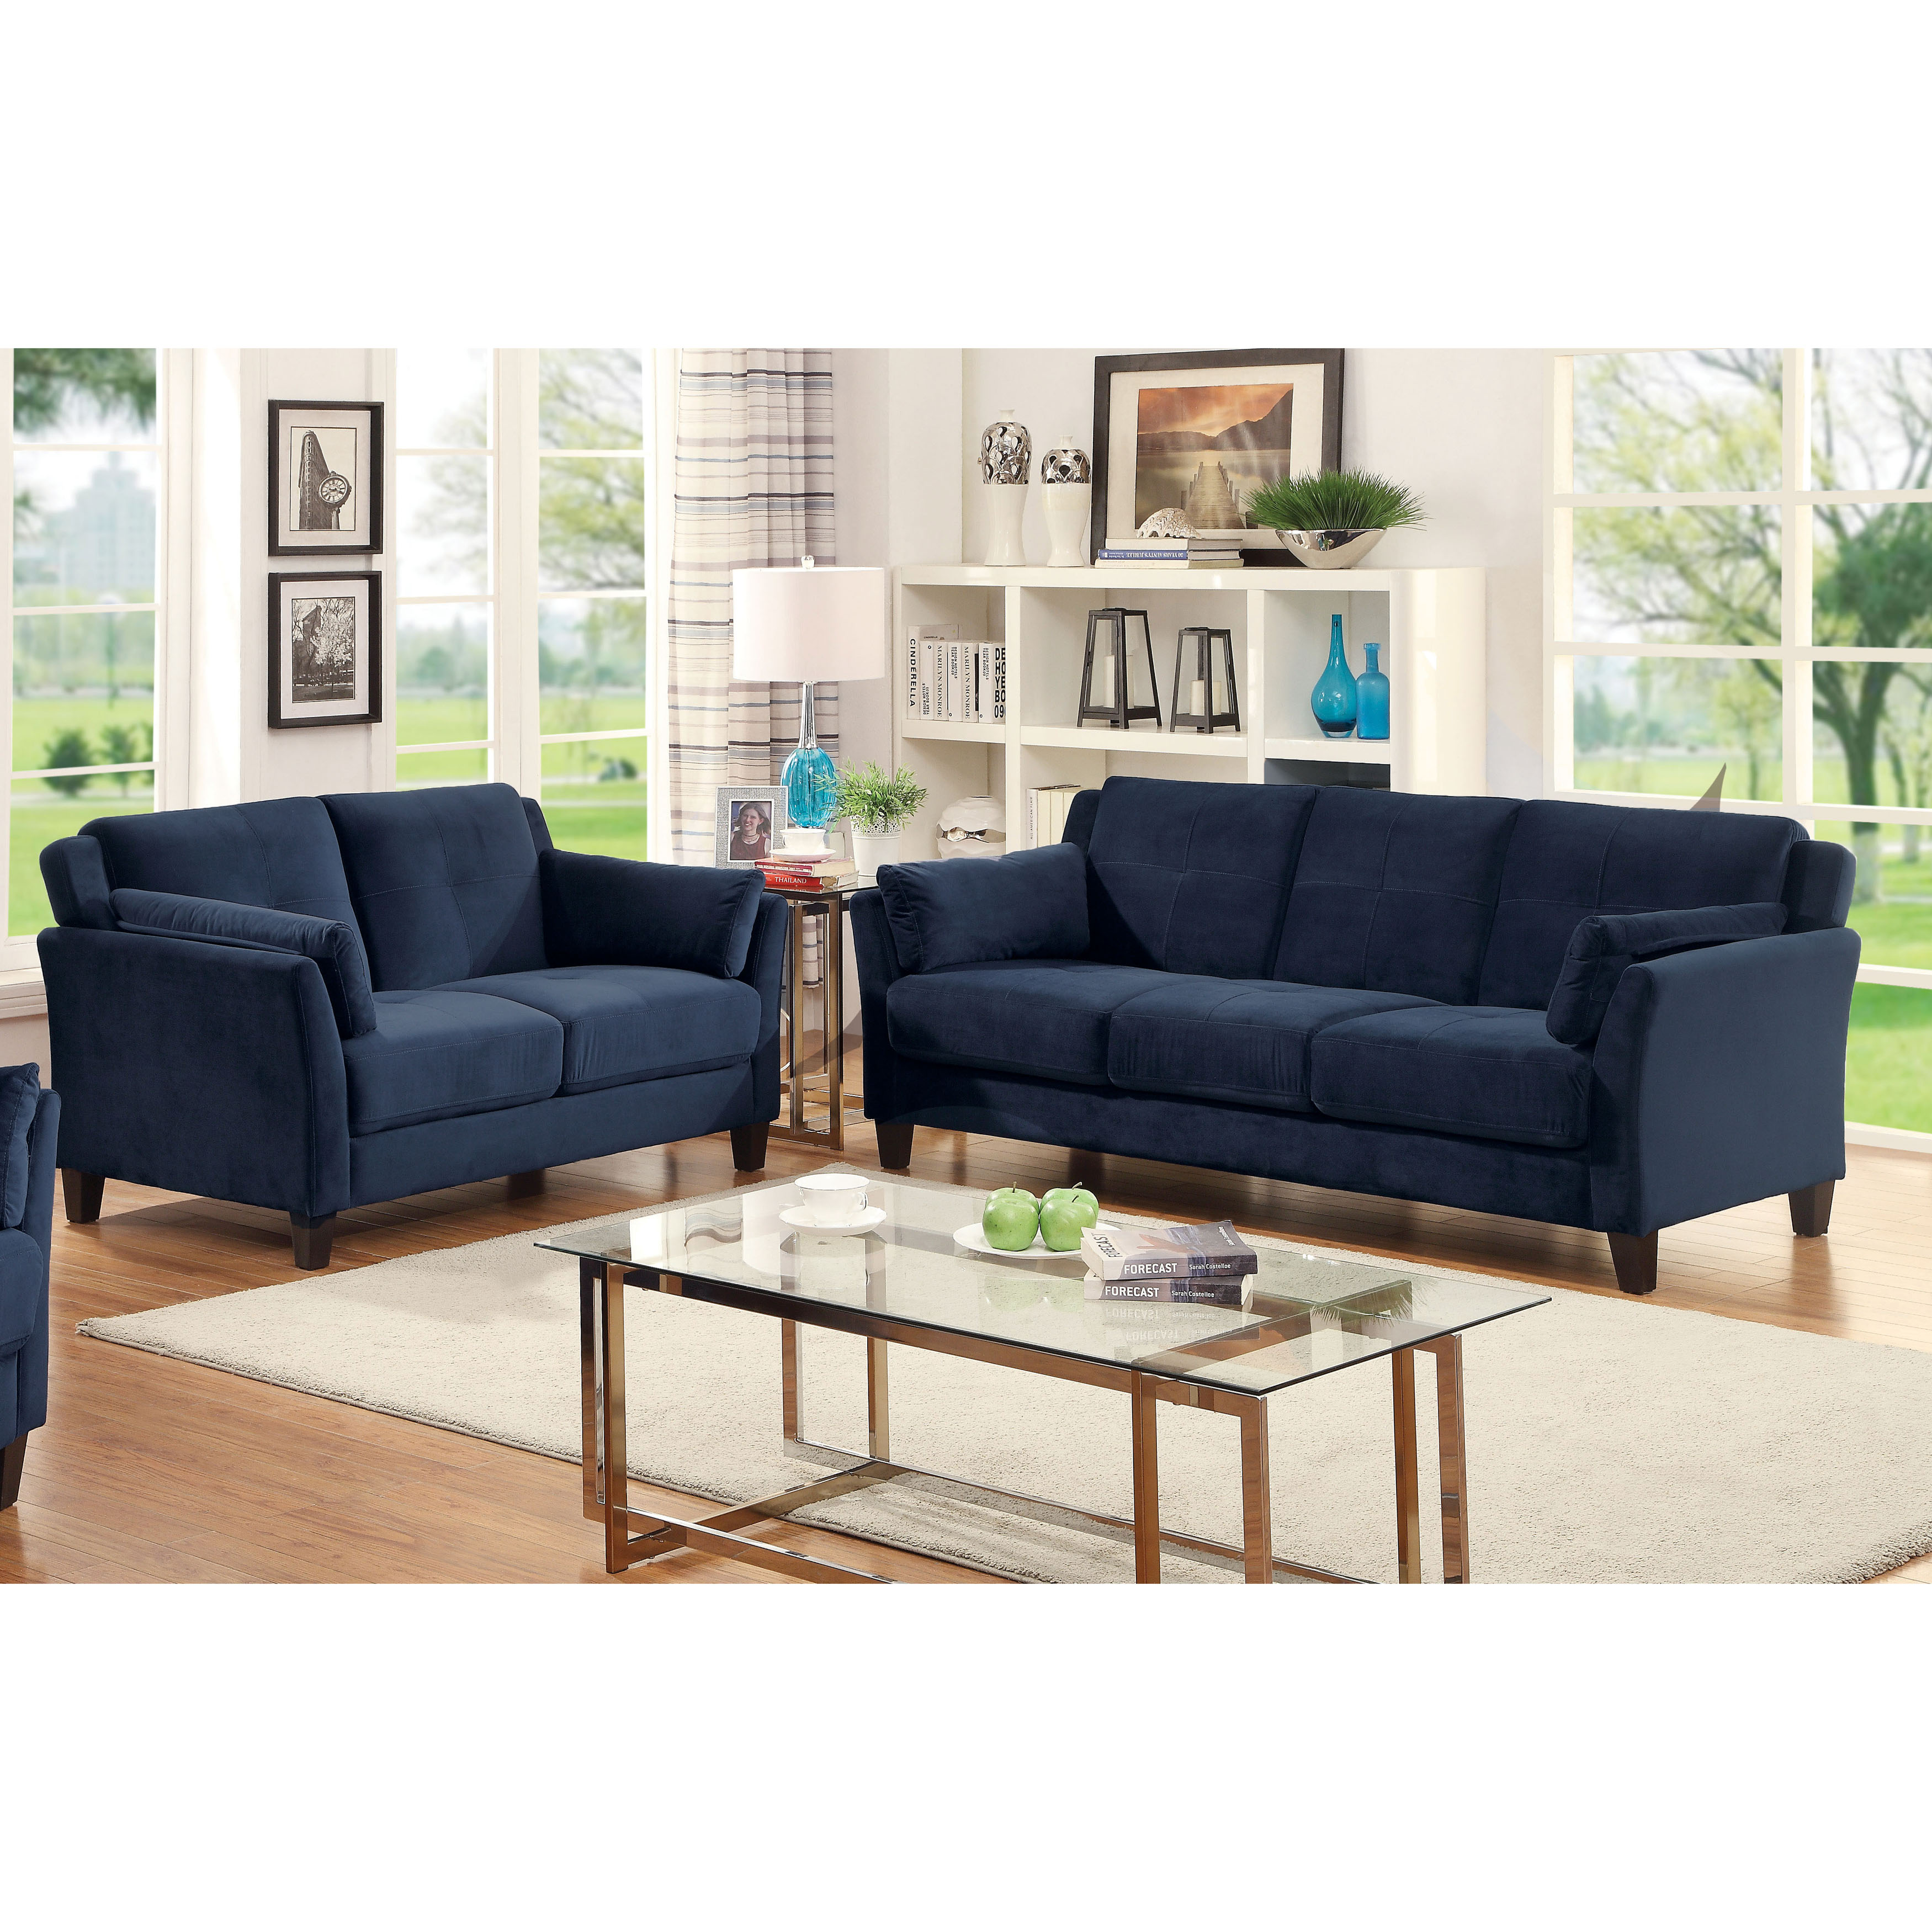 Sofa Set Offer Up Furniture Of America Sophea Flannelette 2 Piece Sofa Set